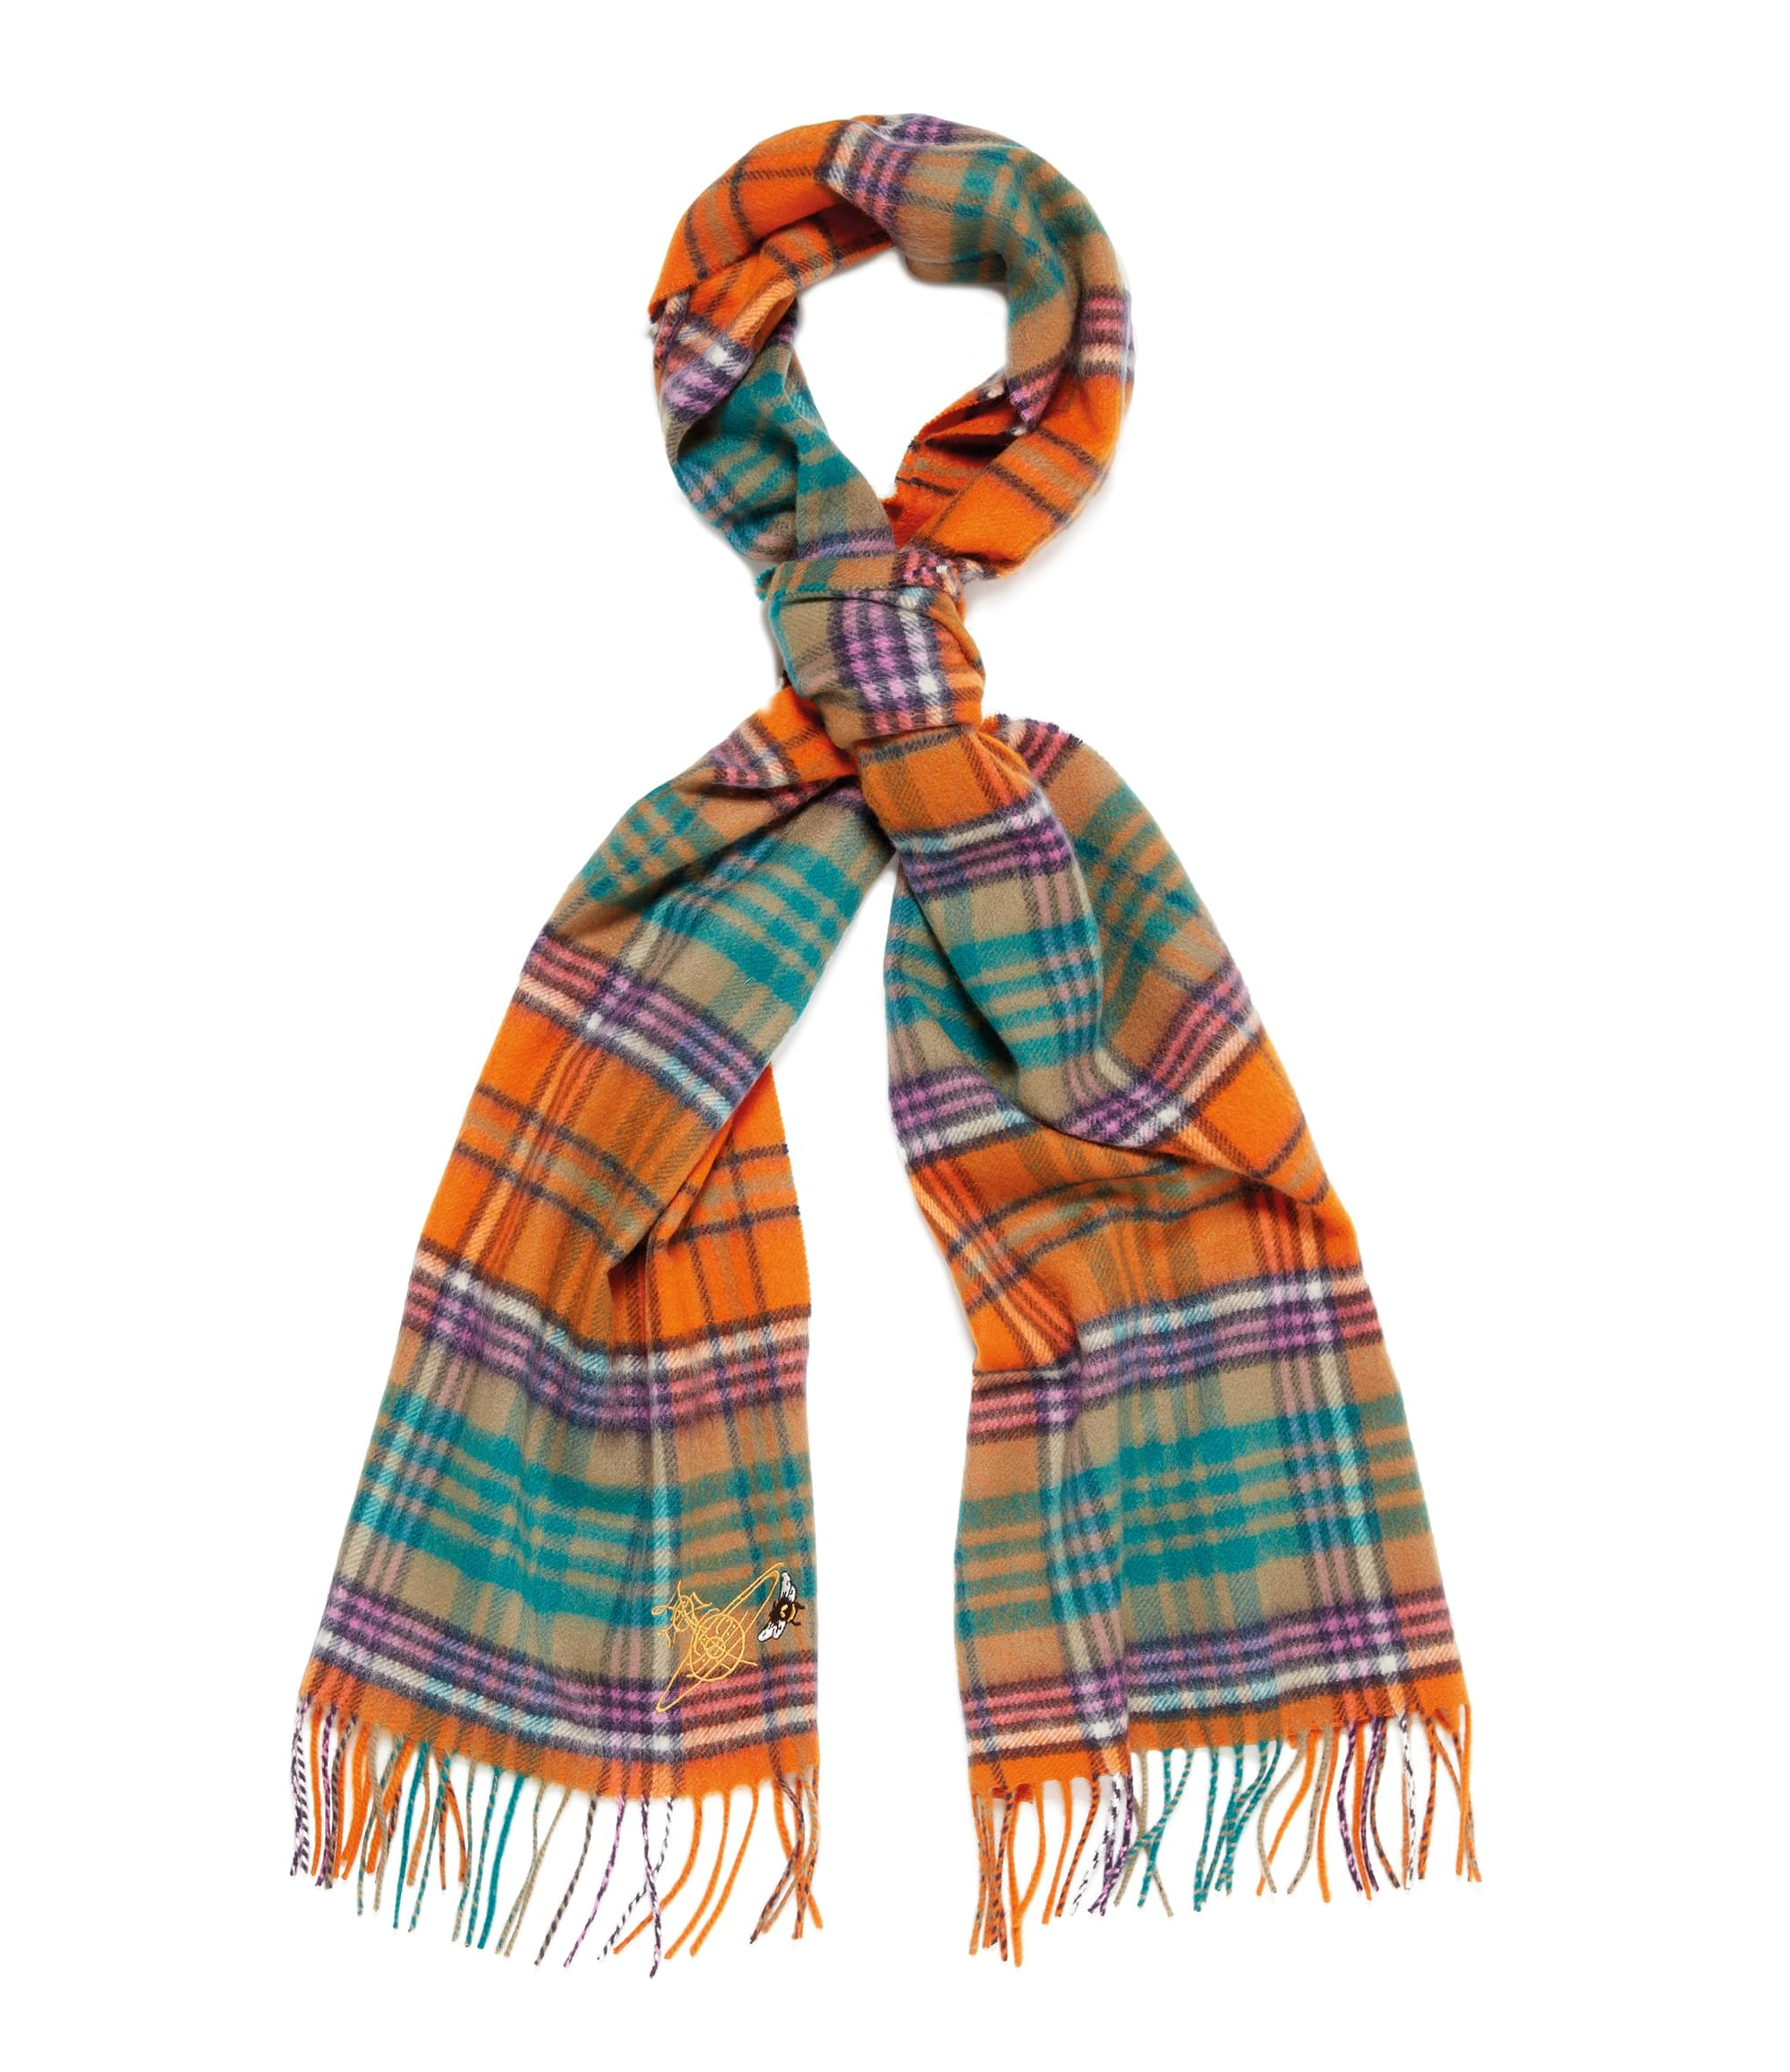 Vivienne Westwood Johnstons of Elgin Orange Tartan Scarf